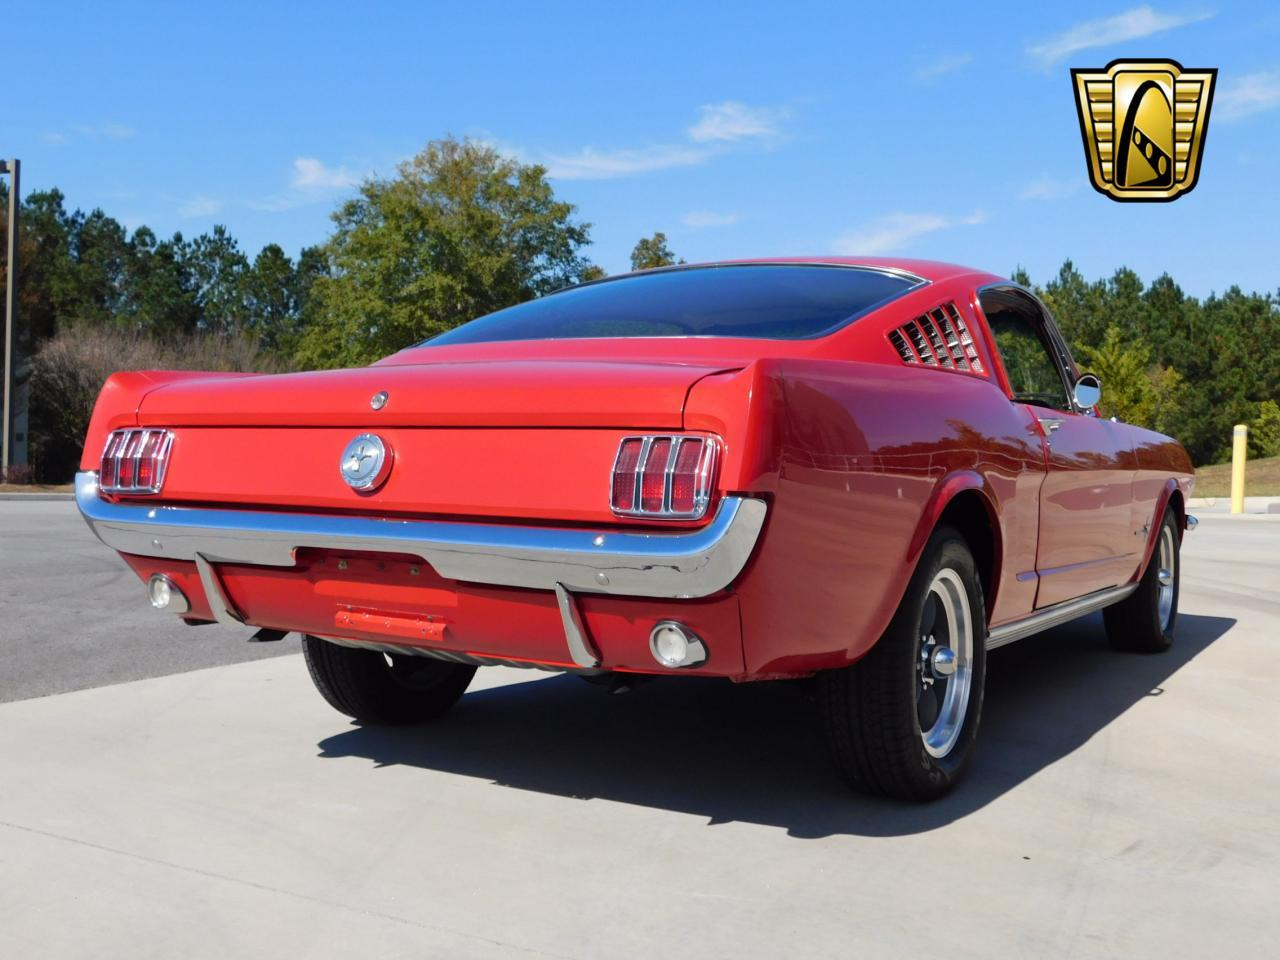 Large Picture of Classic '66 Ford Mustang located in Alpharetta Georgia - $46,995.00 - M8OT